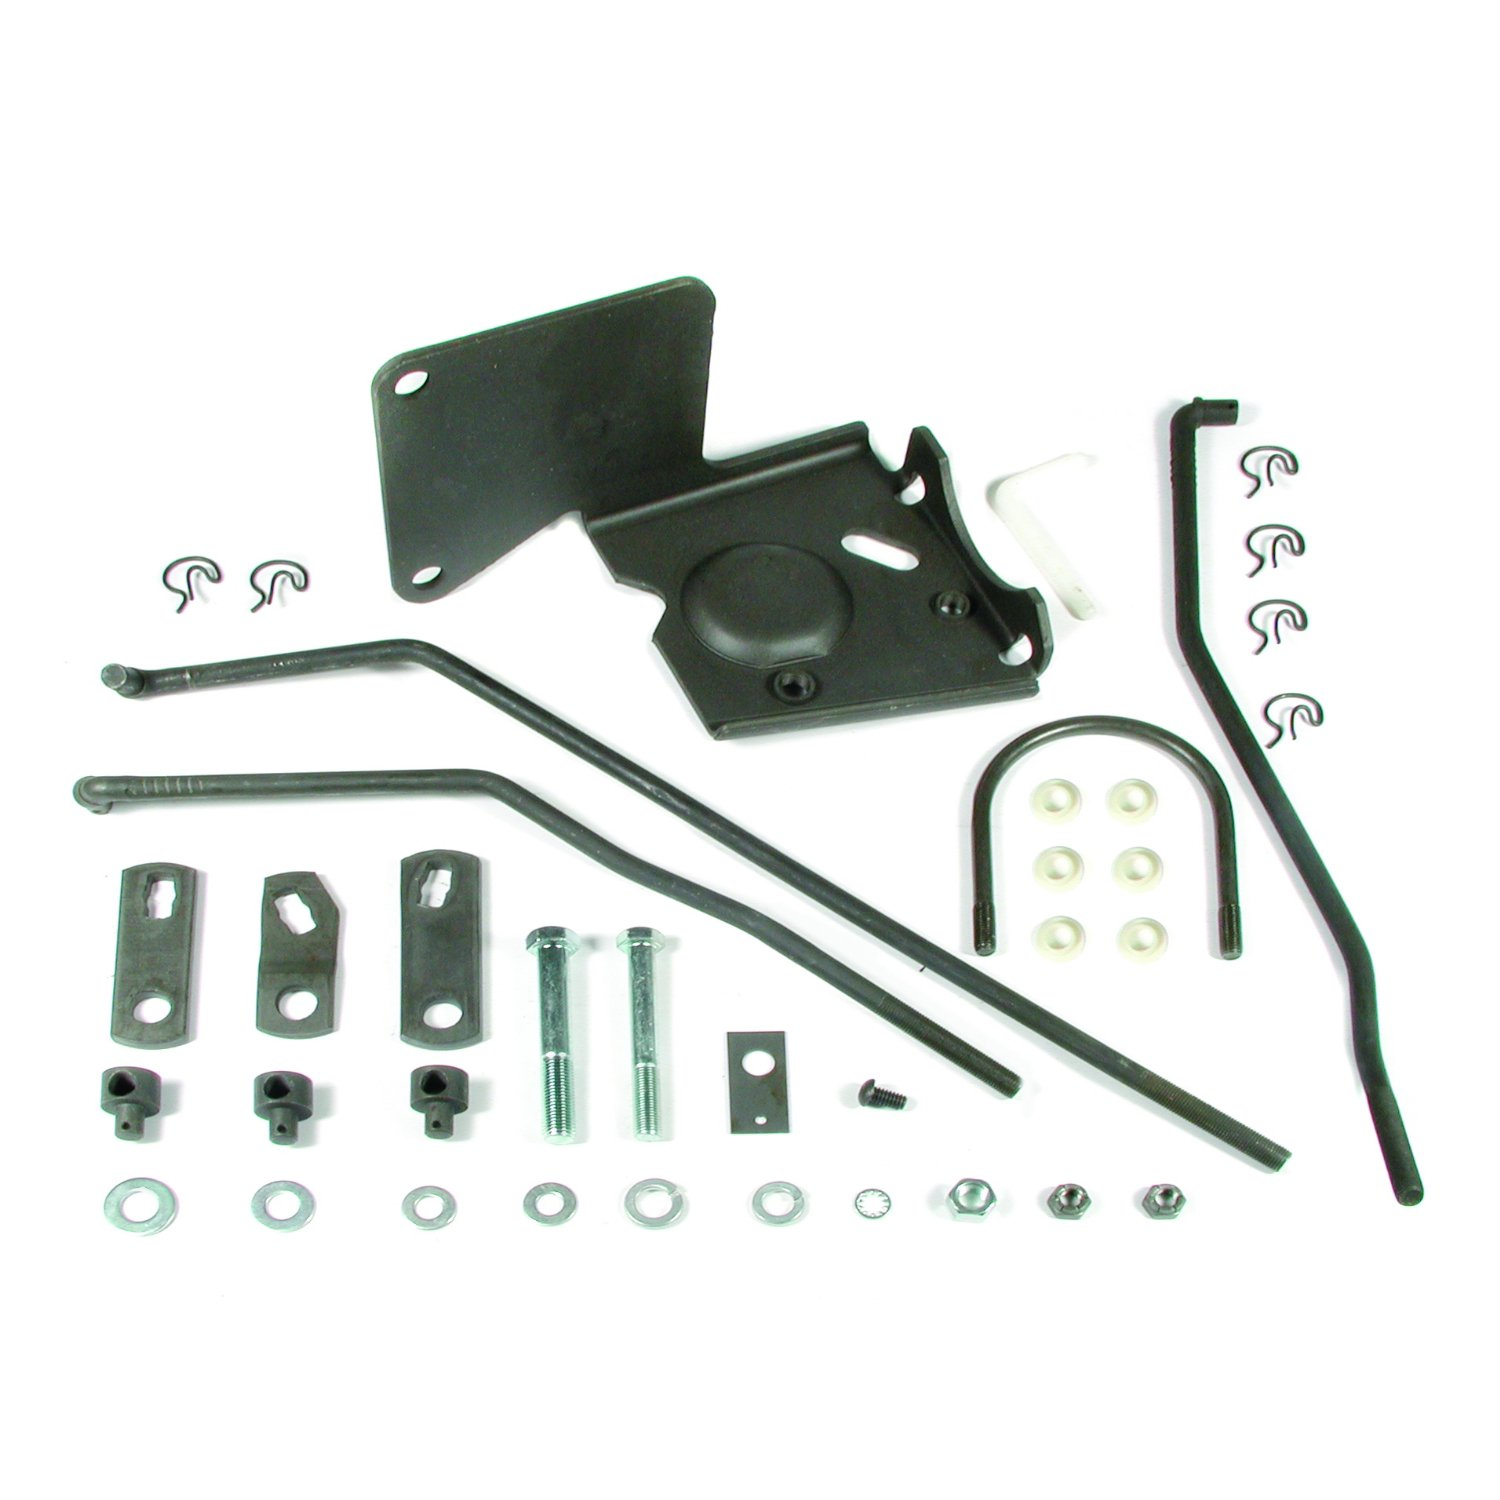 Hurst 3918014 Manual Gear Shift Lever Kit